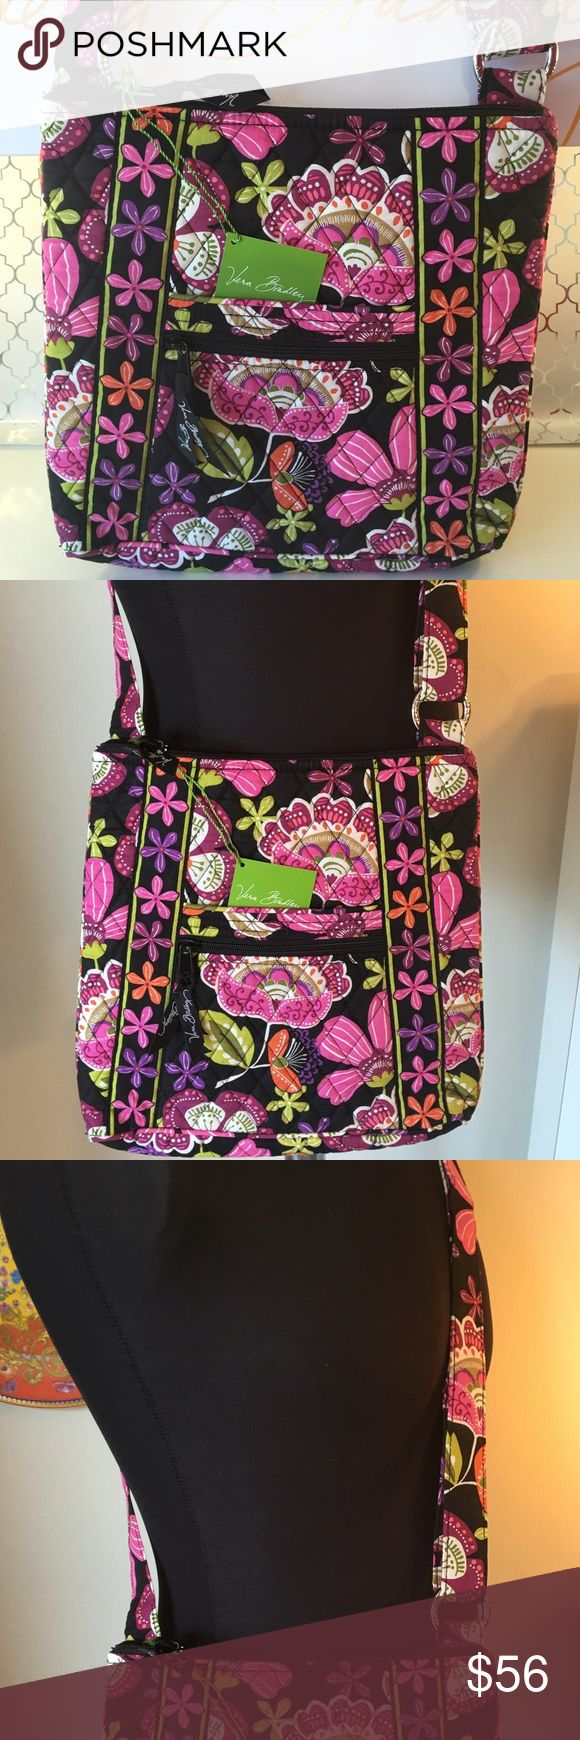 🆕VERA BRADLEY NEW LARGE CROSSBODY BAG 💯AUTHENTIC VERA BRADLEY NEW NEVER USED WITH TAGS LARGE SHOULDER/ CROSSBODY BAG 💯AUTHENTIC. SO STUNNING AND STYLISH PERFECT FOR ANY OCCASION . SUCH A WONDERFUL ROOMY BAG! IT HAS THREE EXTERIOR POCKETS AND THREE INTERIOR WALL POCKETS. THIS AMAZING BAG MEASURES NEARLY 12 INCHES WIDE BY 11 INCHES TALL WITH A LONG ADJUSTABLE SHOULDER / CROSSBODY STRAP Vera Bradley Bags Crossbody Bags